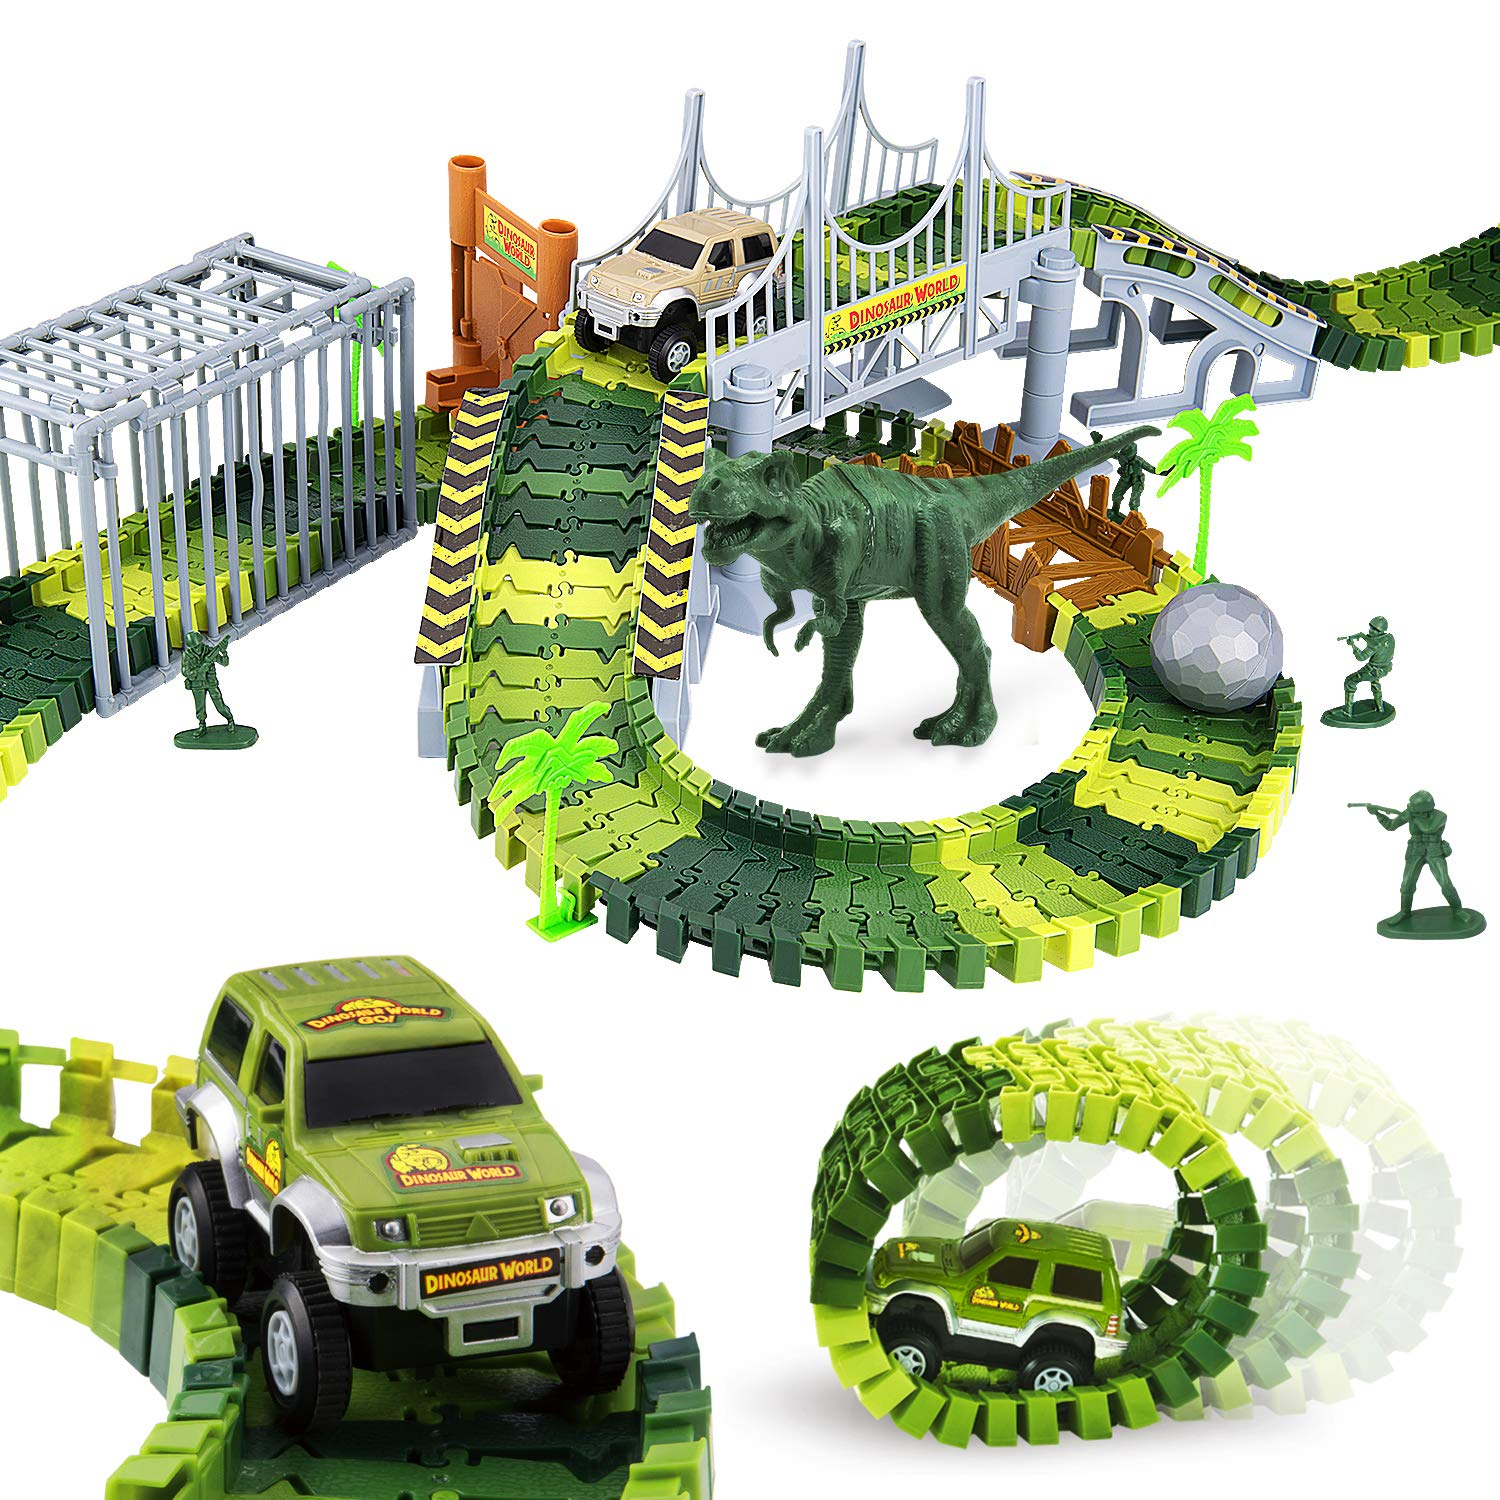 Elongdi Dinosaur World Slot Car Race [ 144 Track Pieces ] Create a Road Track Sets with Tracks, 2 Trucks, 2 Dinosaurs Toys for Kids 3 4 5 6 7 8 Years Old Boys Girls Jurassic Prehistoric World Gift